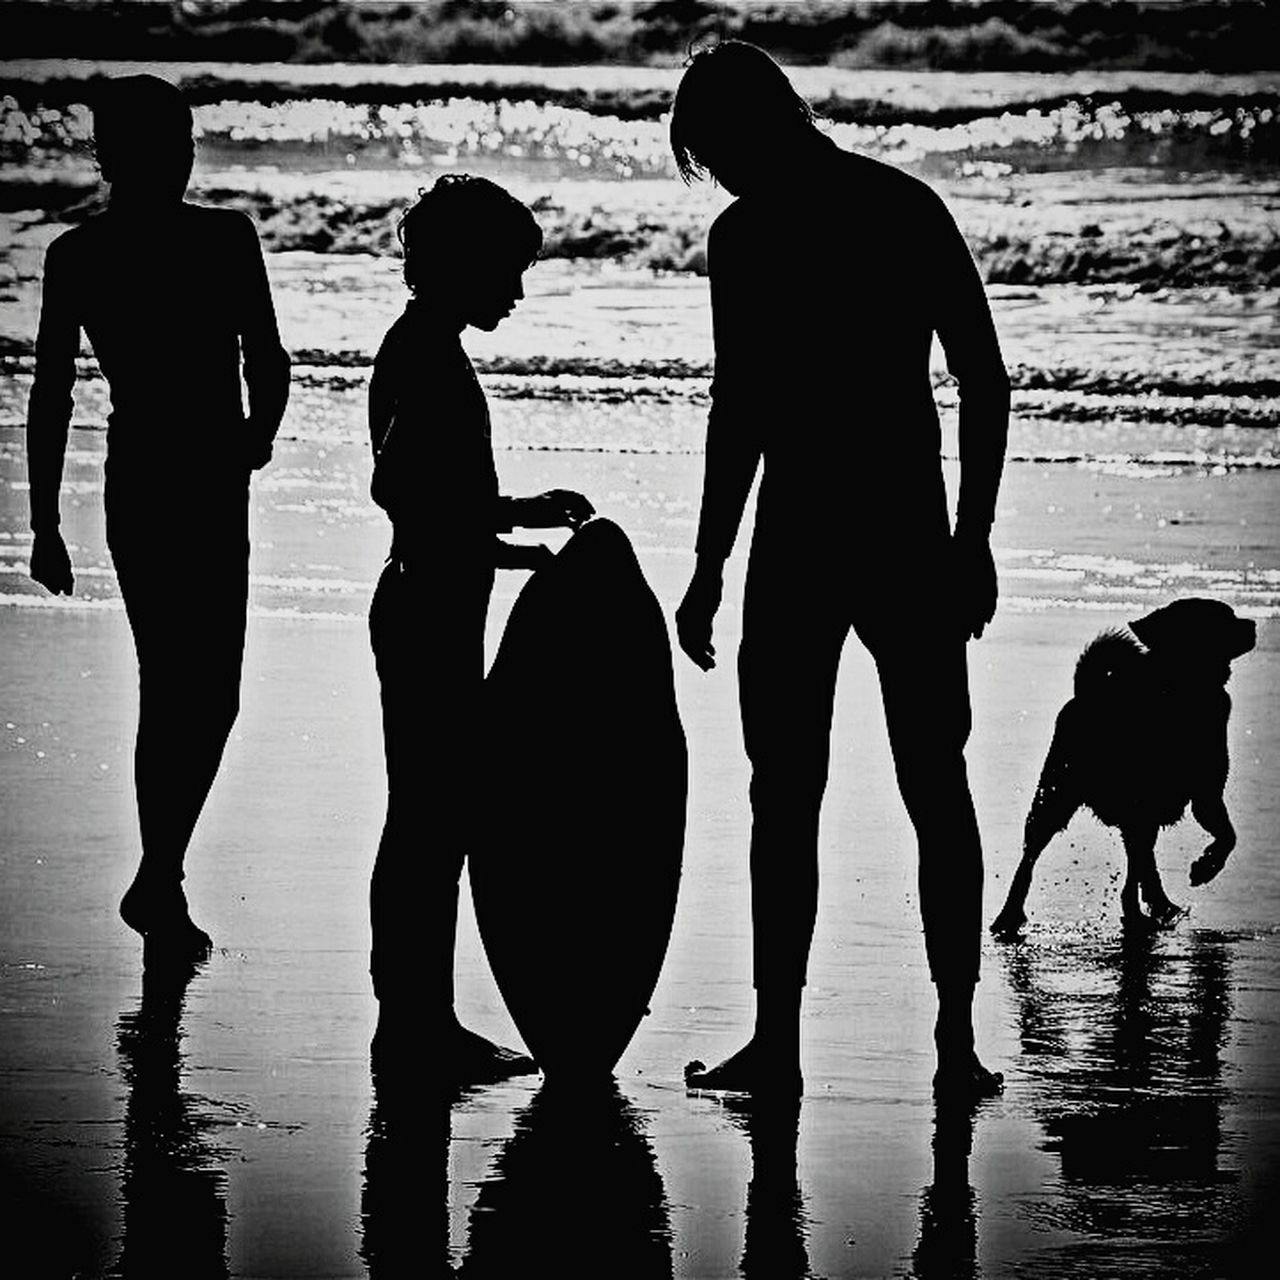 Surfing surfingphotograpgy Silhouette Reflection Child Leisure Activity People Outdoors Water Men Adventure Friendship Adult Day First Eyeem Photo